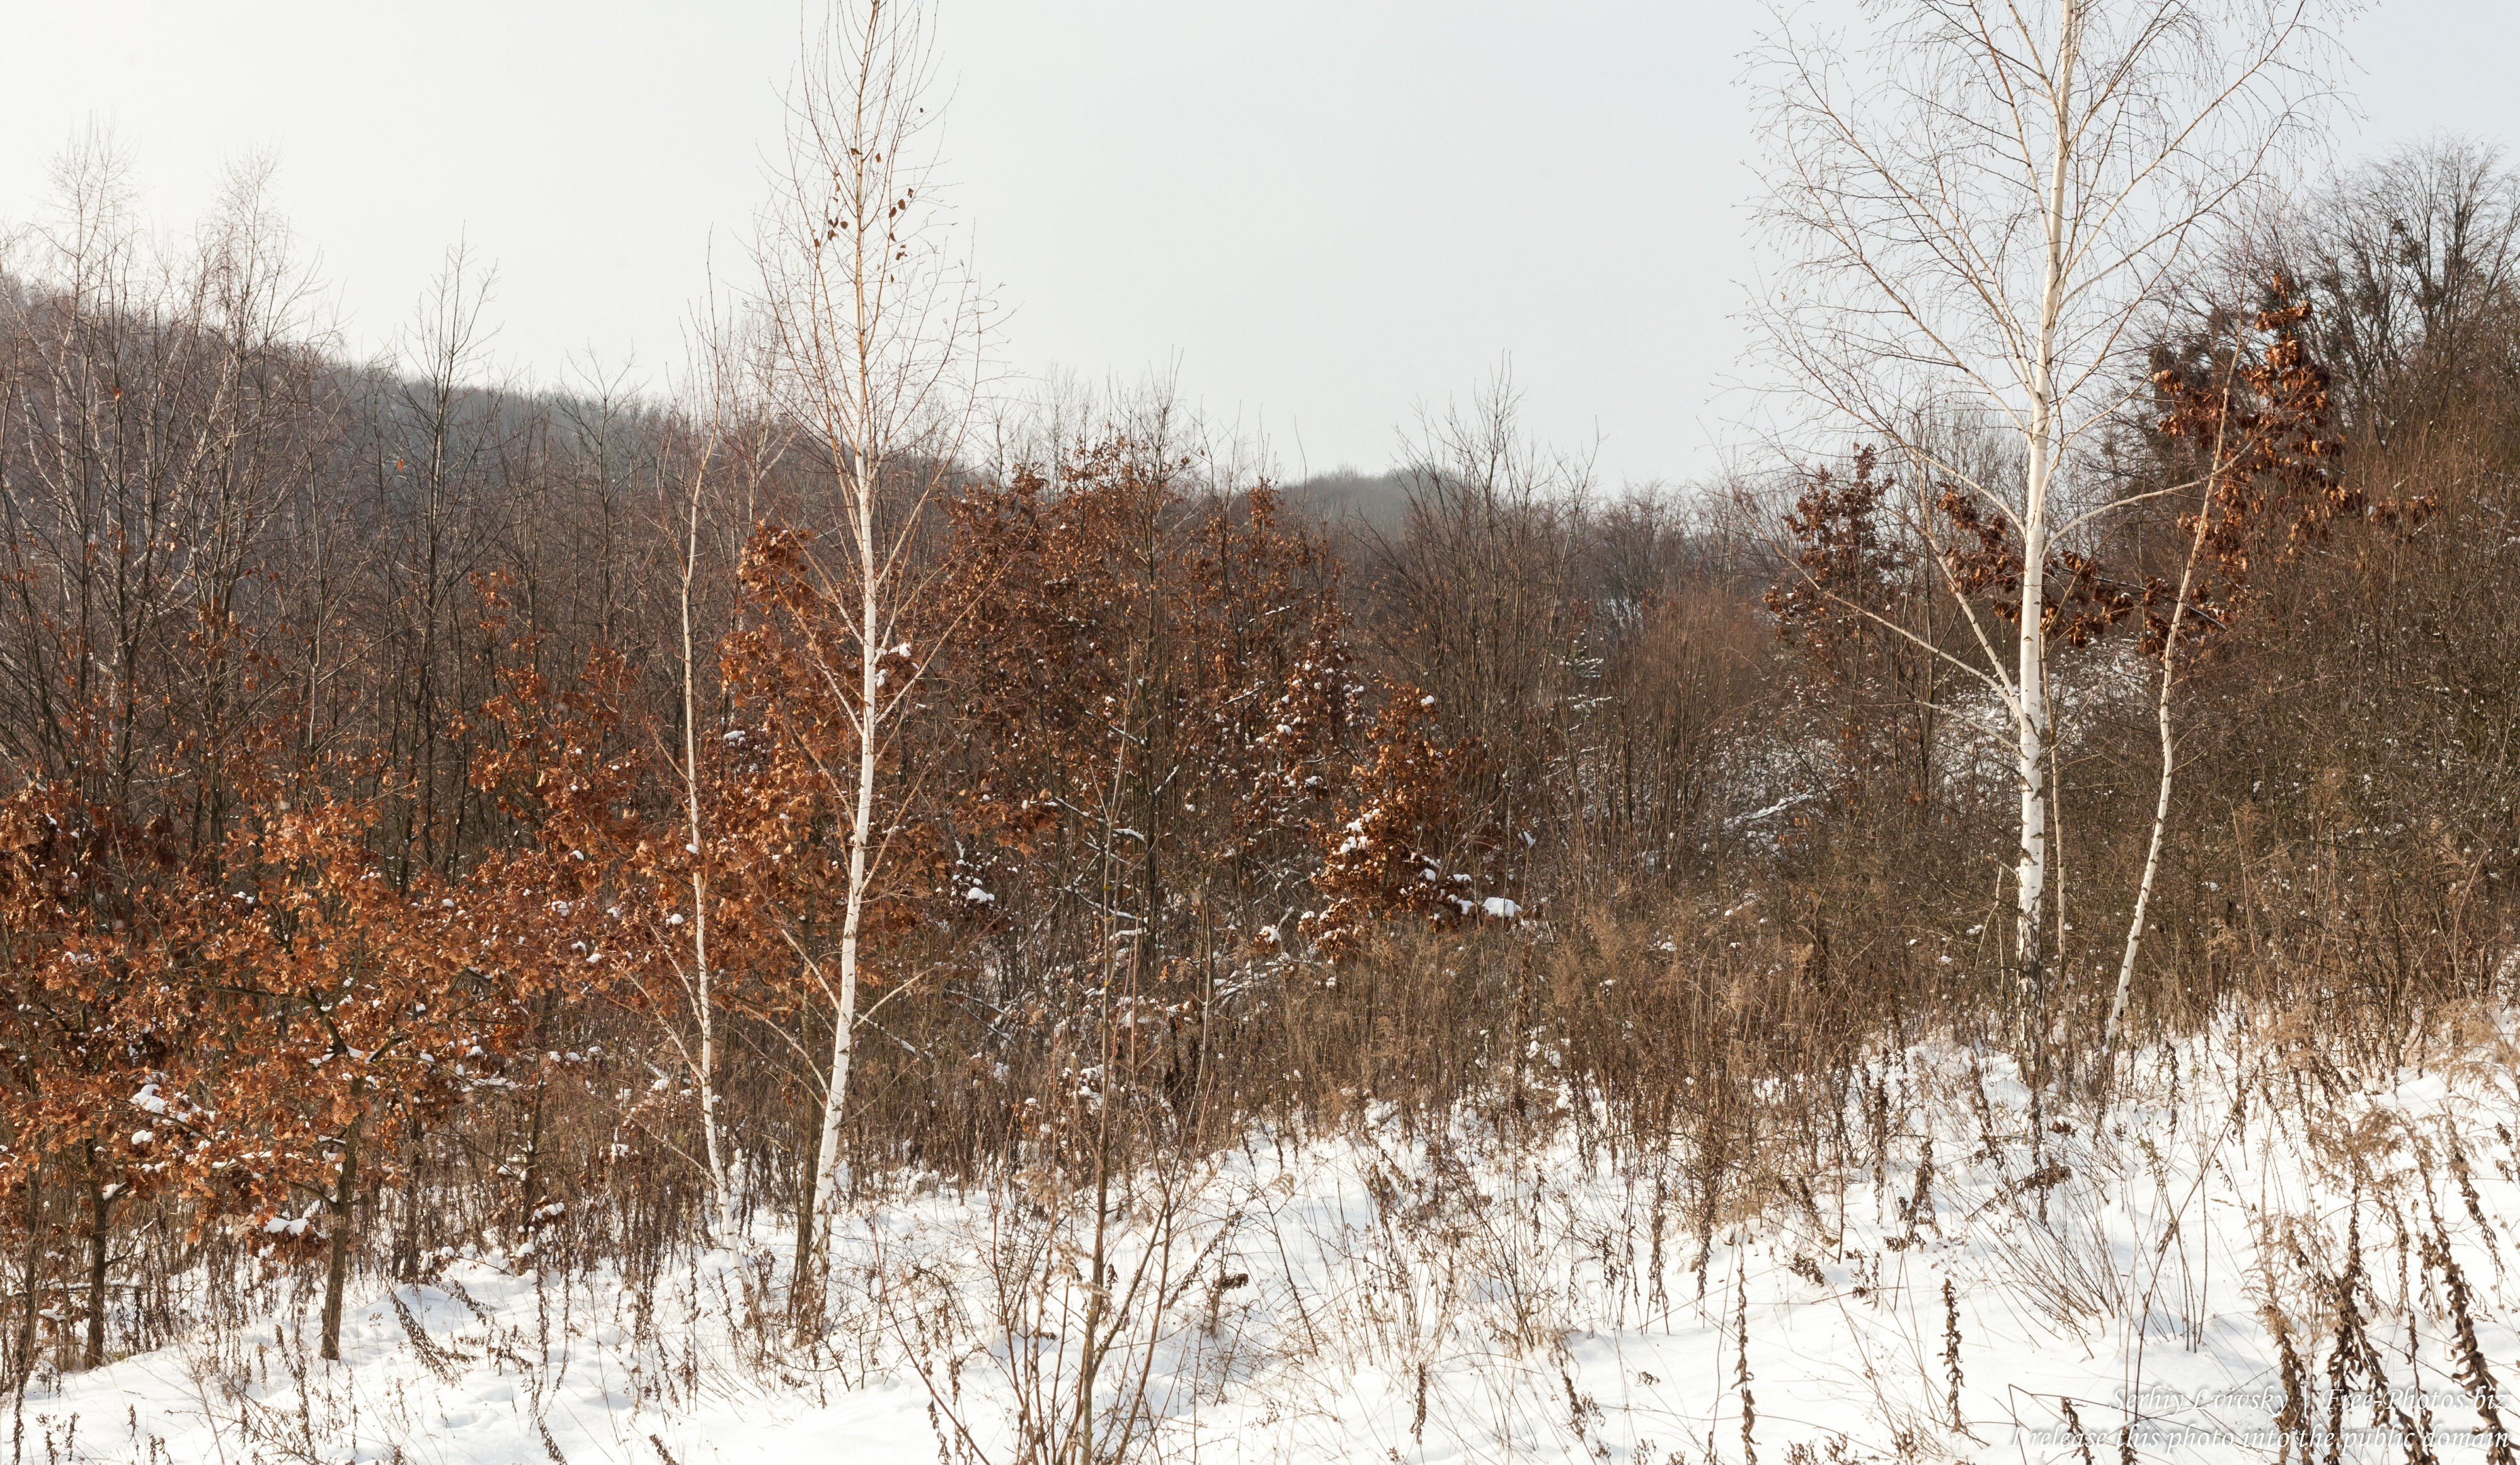 nature_in_rivne_region_of_ukraine_photographed_by_serhiy_lvivsky_in_january_2019_05